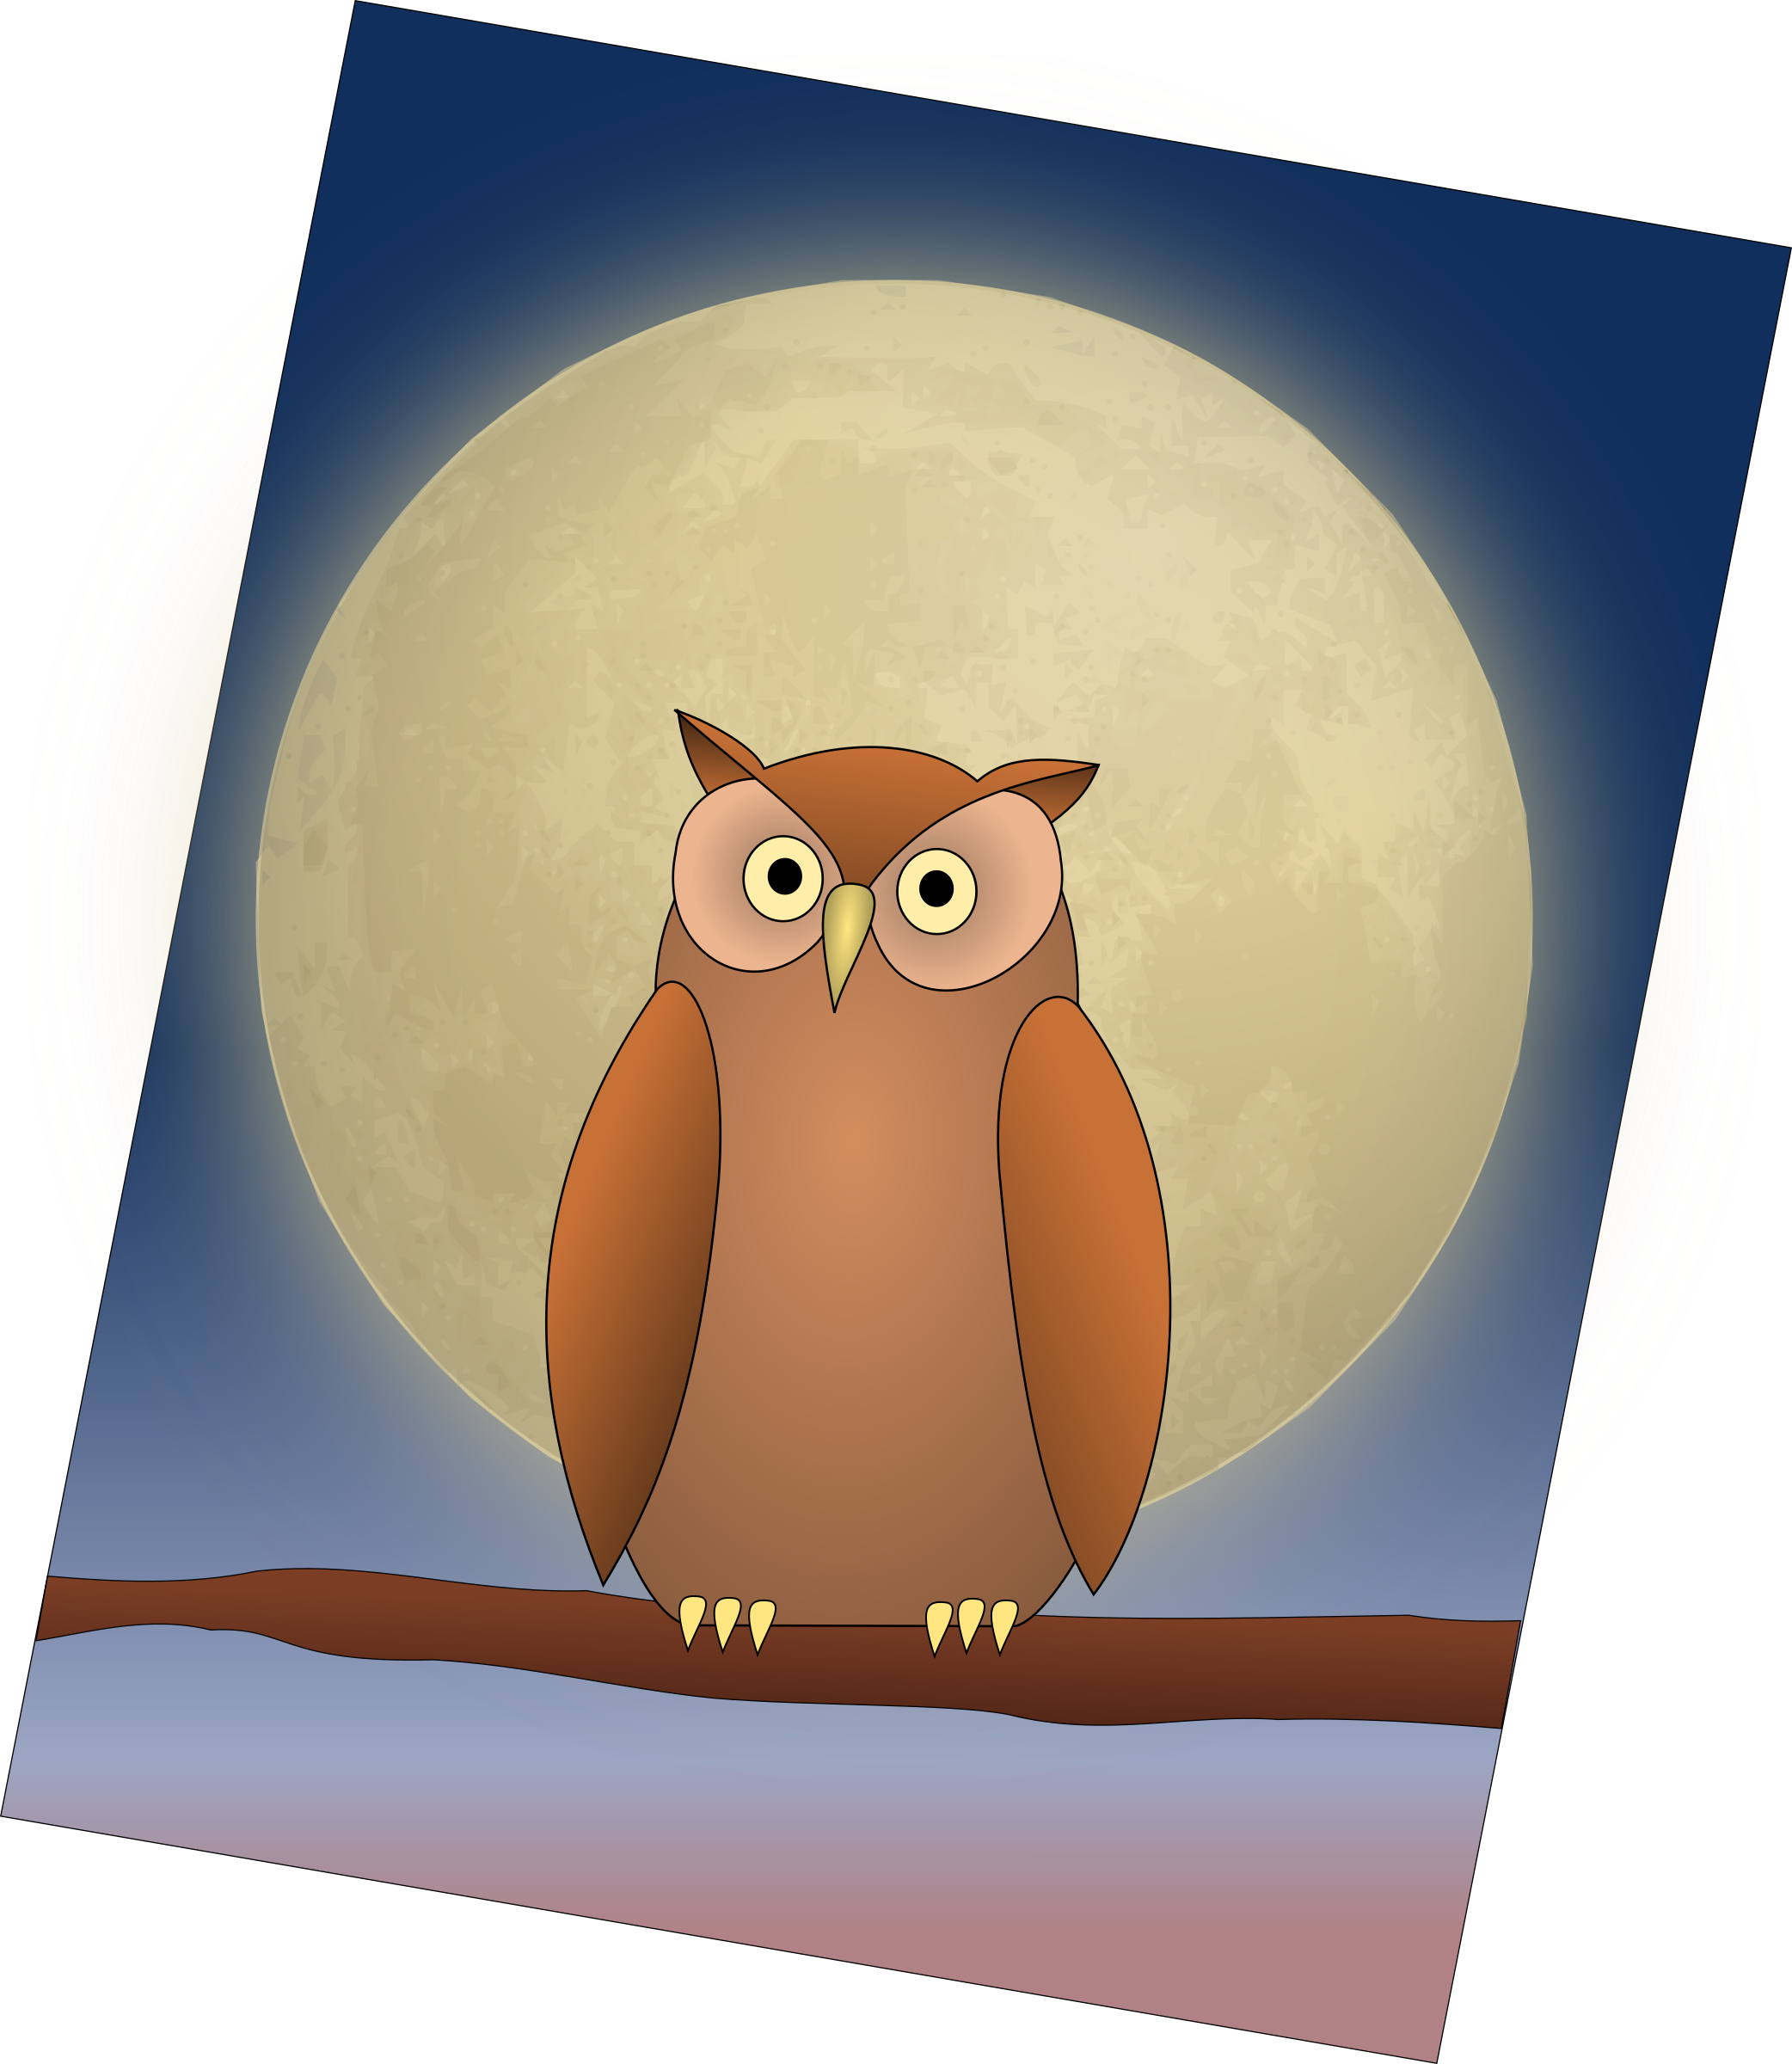 Cat moon clipart svg free Clipart - The Owl and The Moon svg free